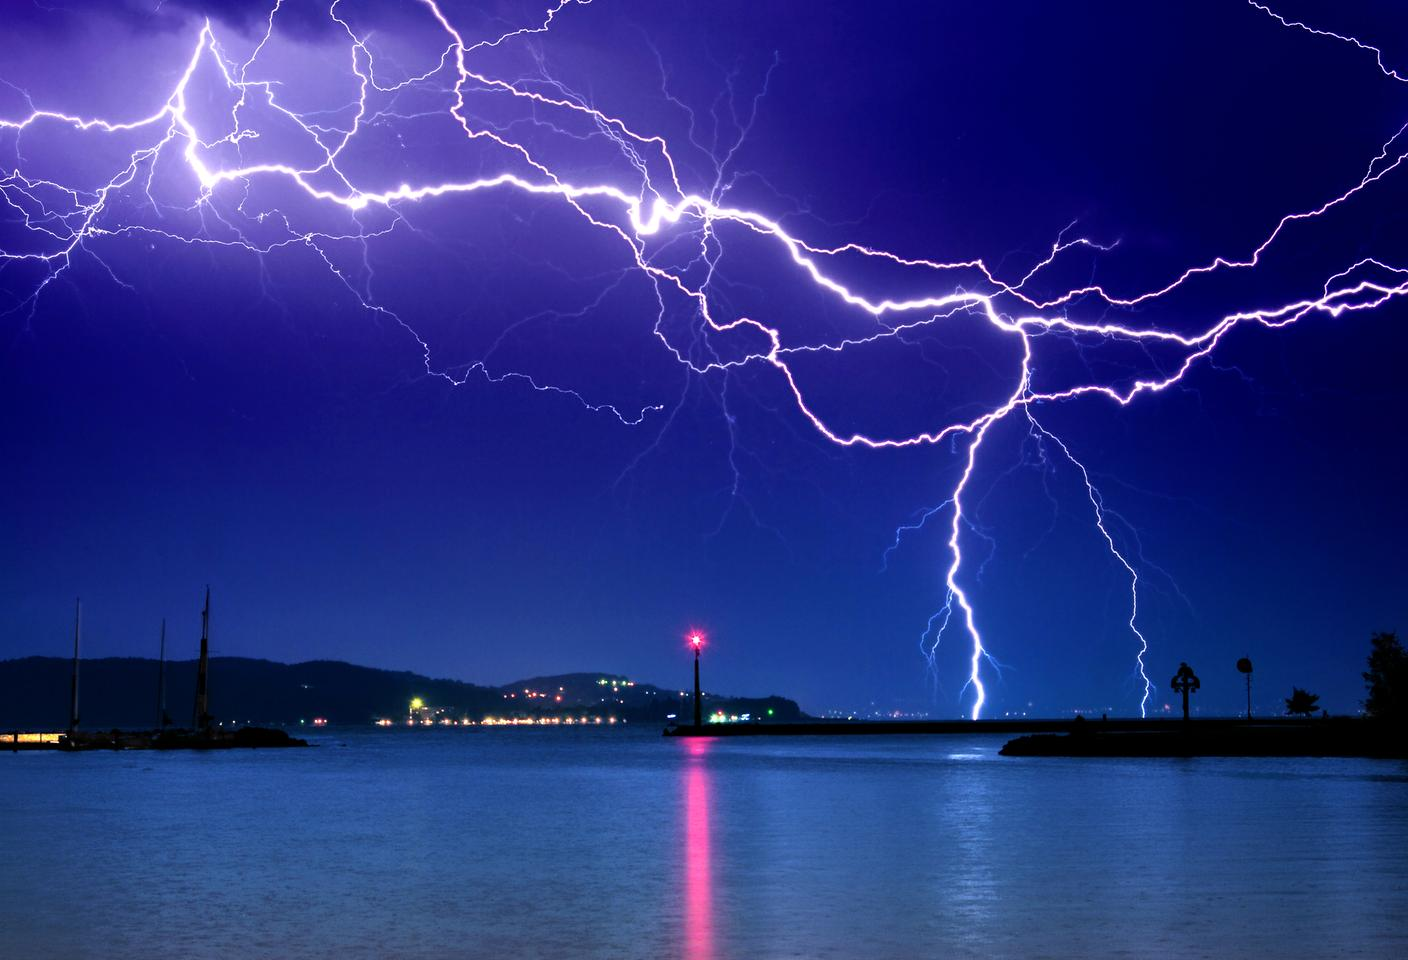 A new study has demonstrated how a tractor beam containing trapped graphene microparticles could one day redirect lightning strikes